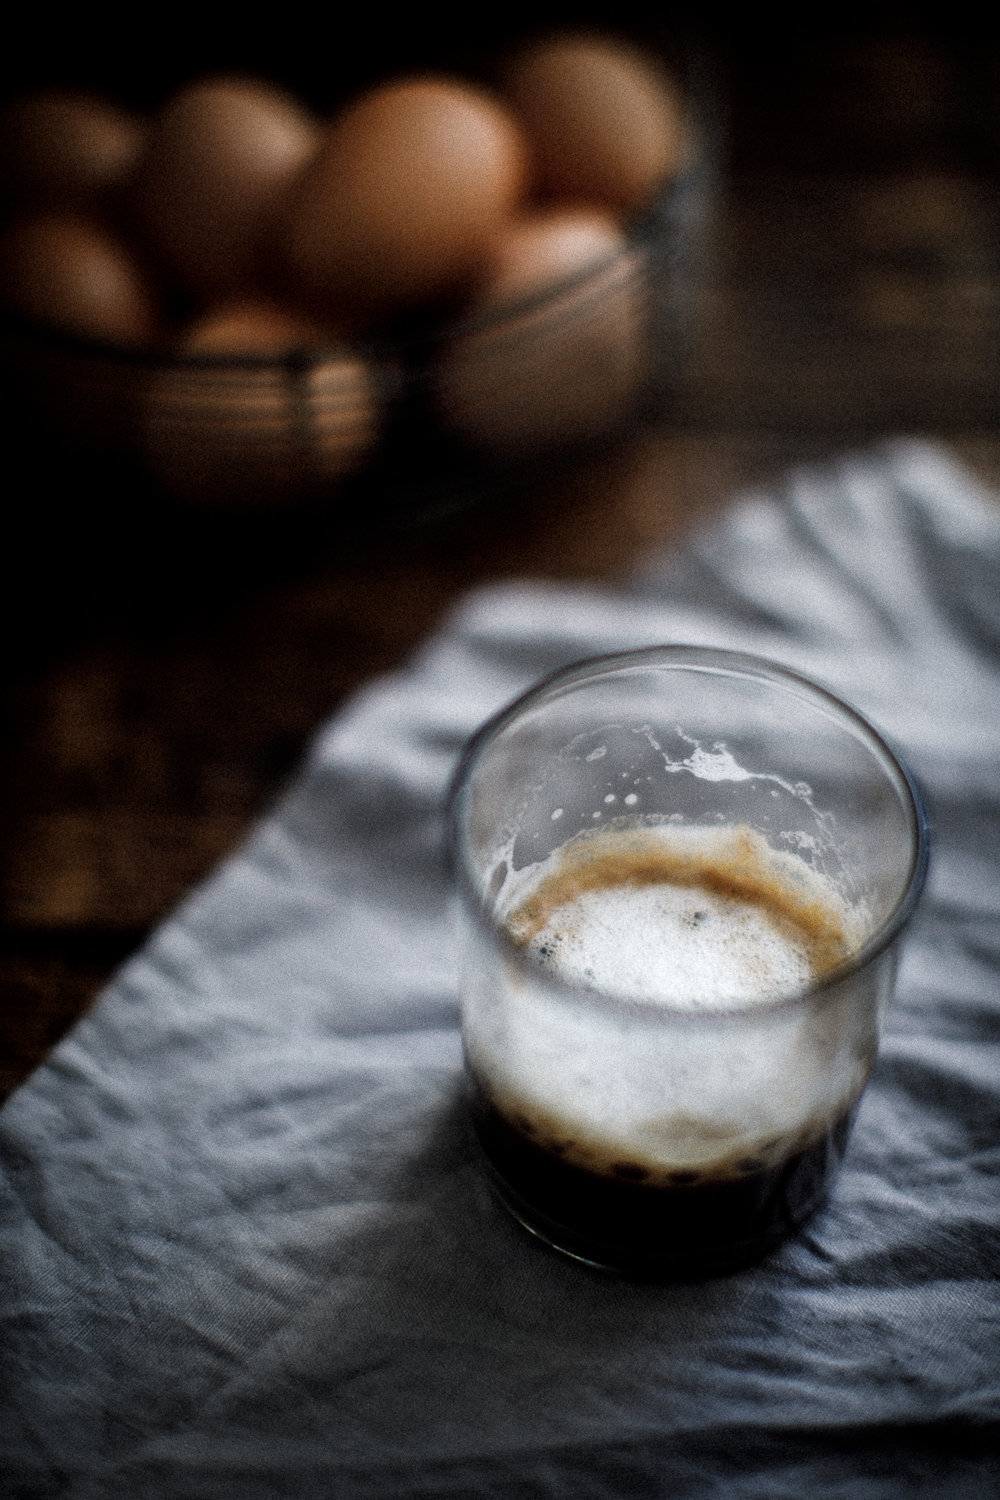 Eggs & Coffee - Anisa Sabet - The Macadames - Food Travel Lifestyle Photographer-321